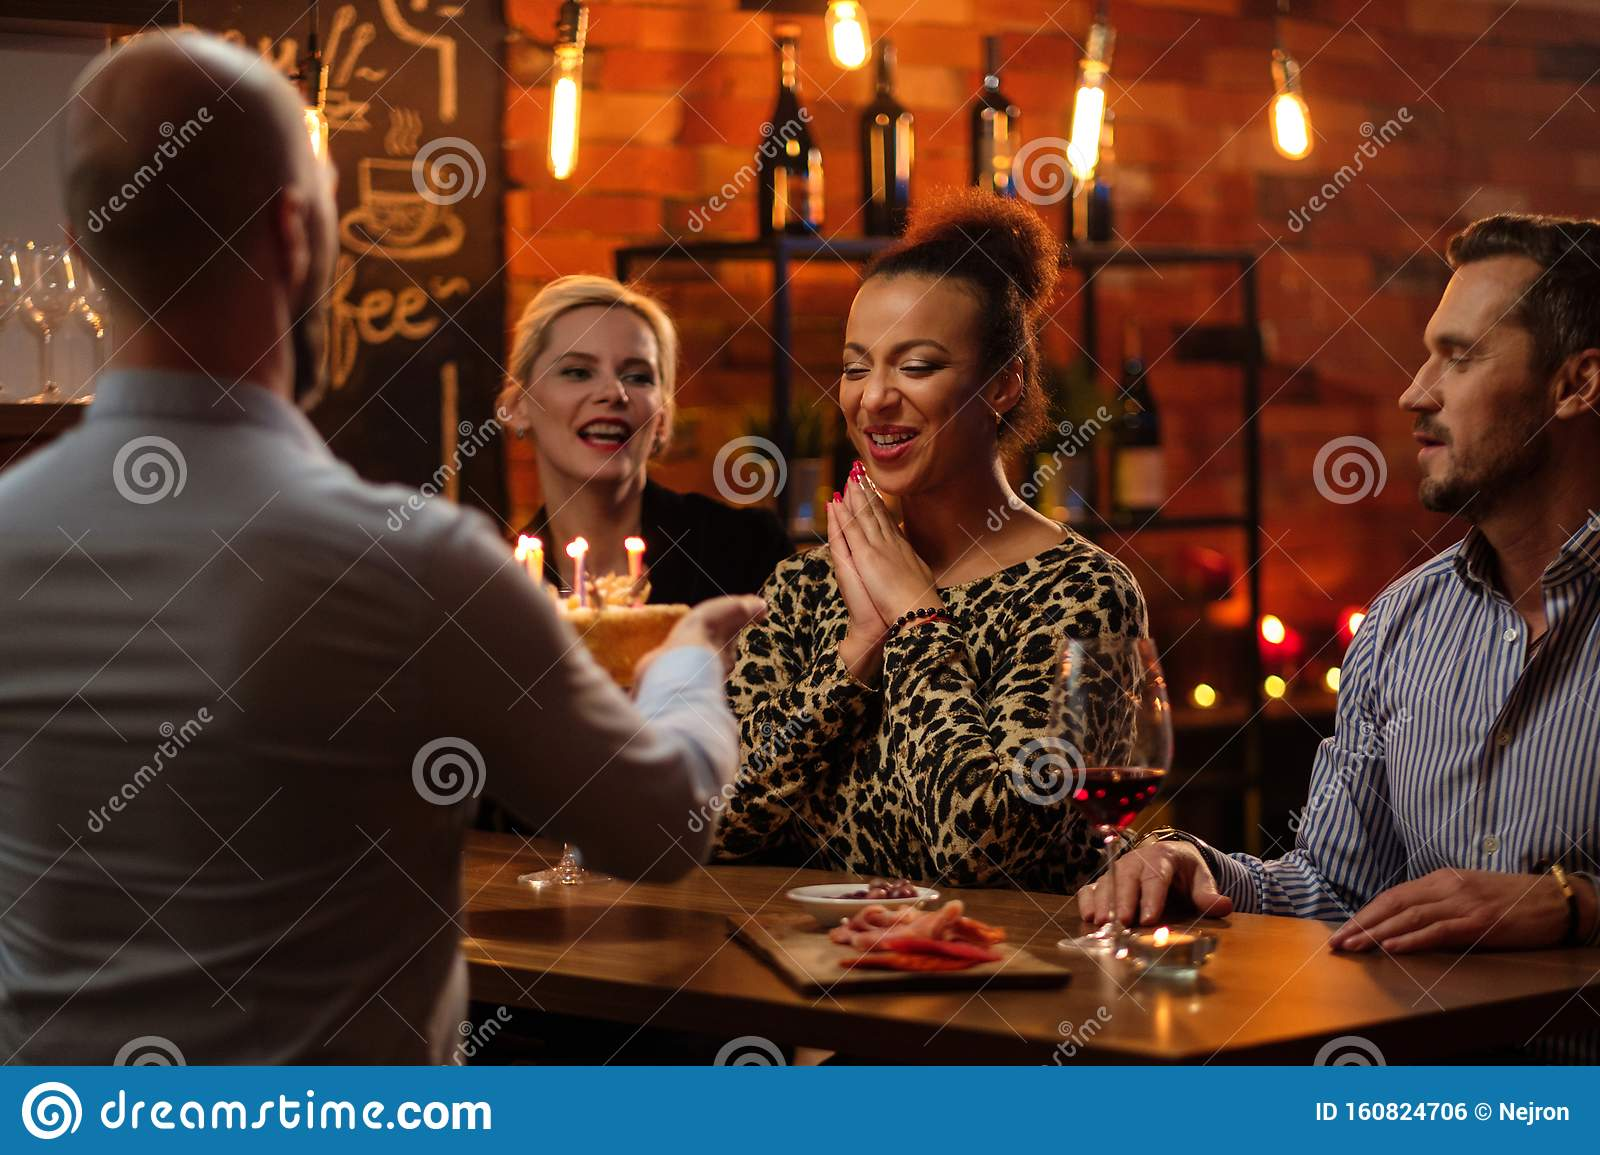 Group Of Friends Celebrating Birthday In A Cafe Behind Bar Counter Stock Photo Image Of Black Drink 160824706